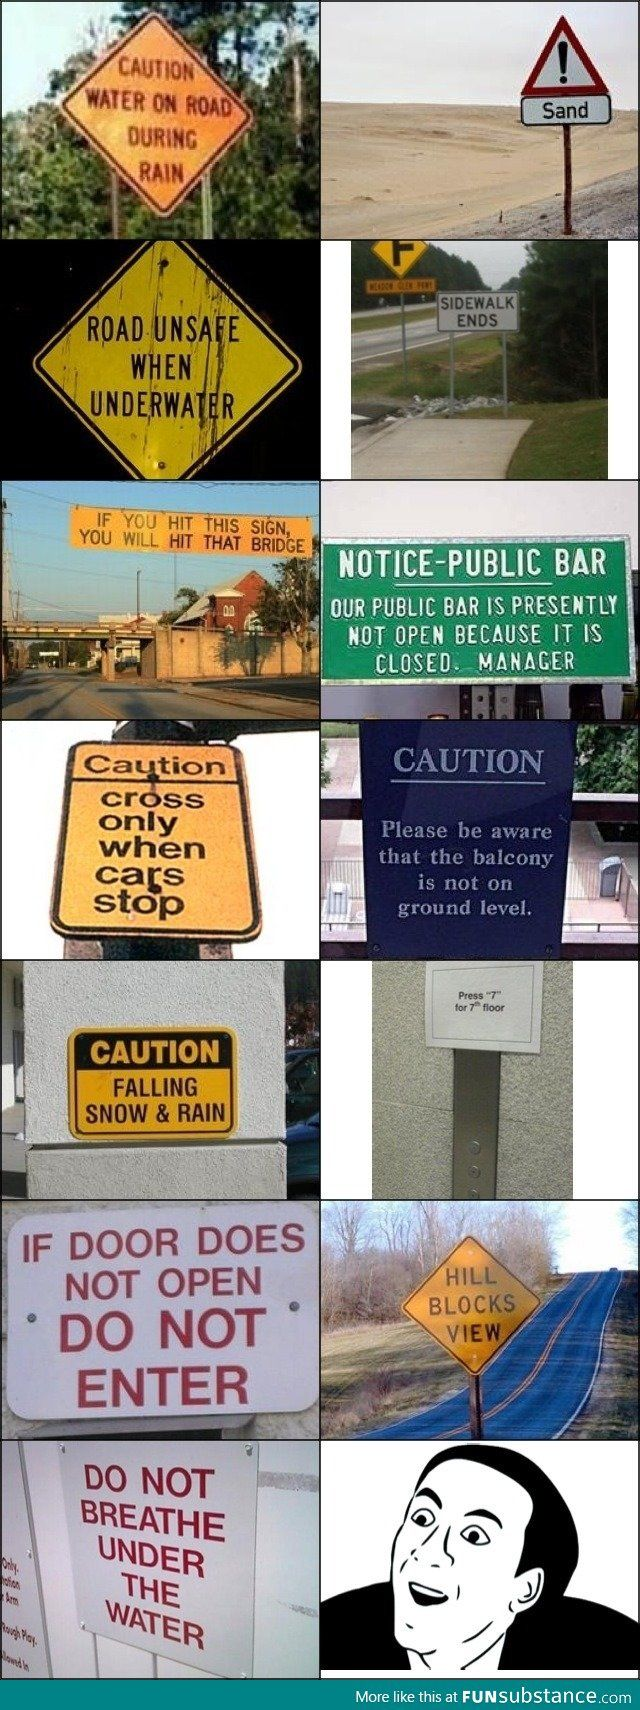 Not sure if stupid people made these signs or if smart people made them for stupid people.